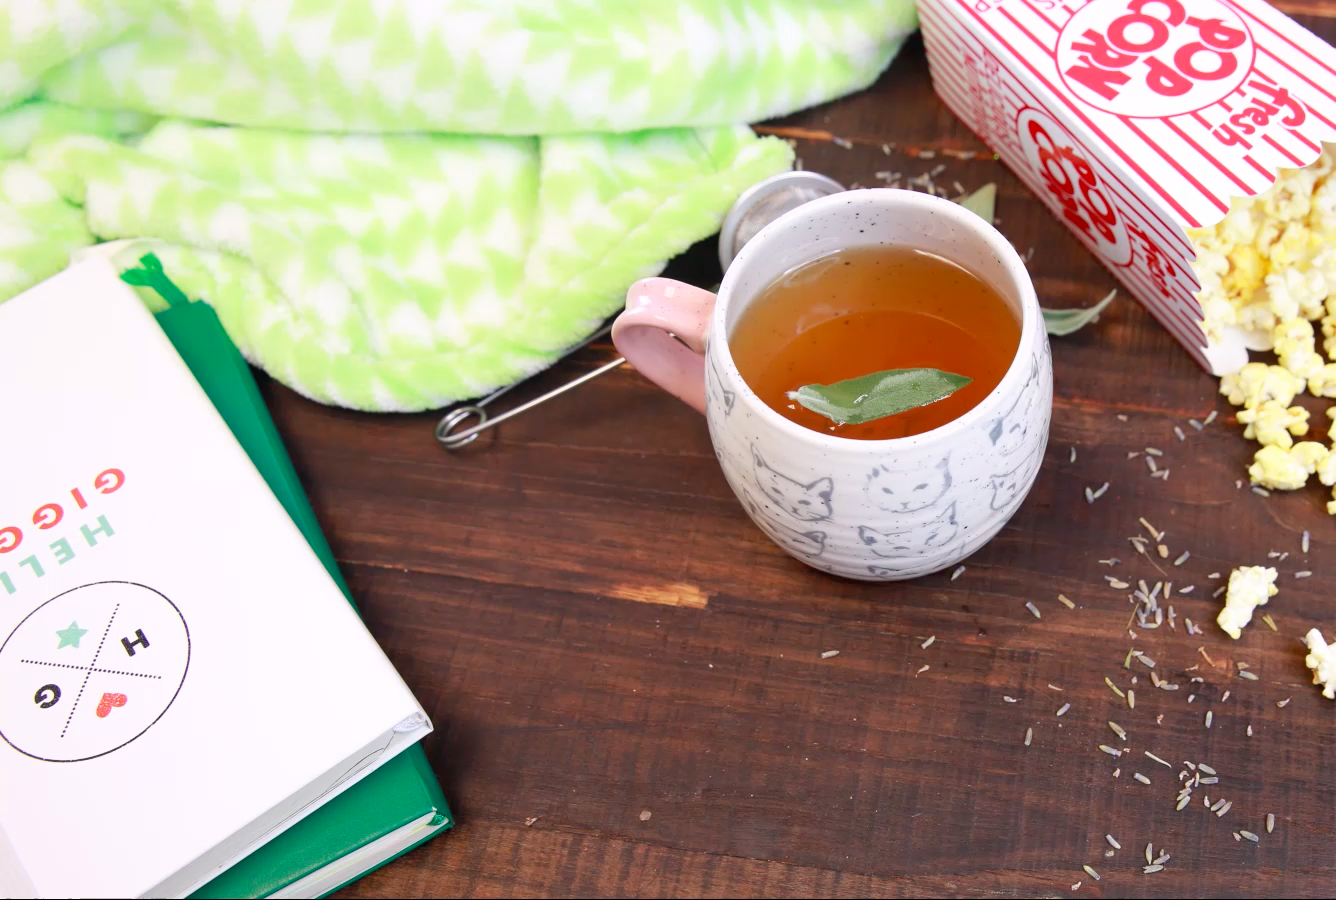 Gear up for the holidays with these 3 green tea recipes made for drinking while binge-watching